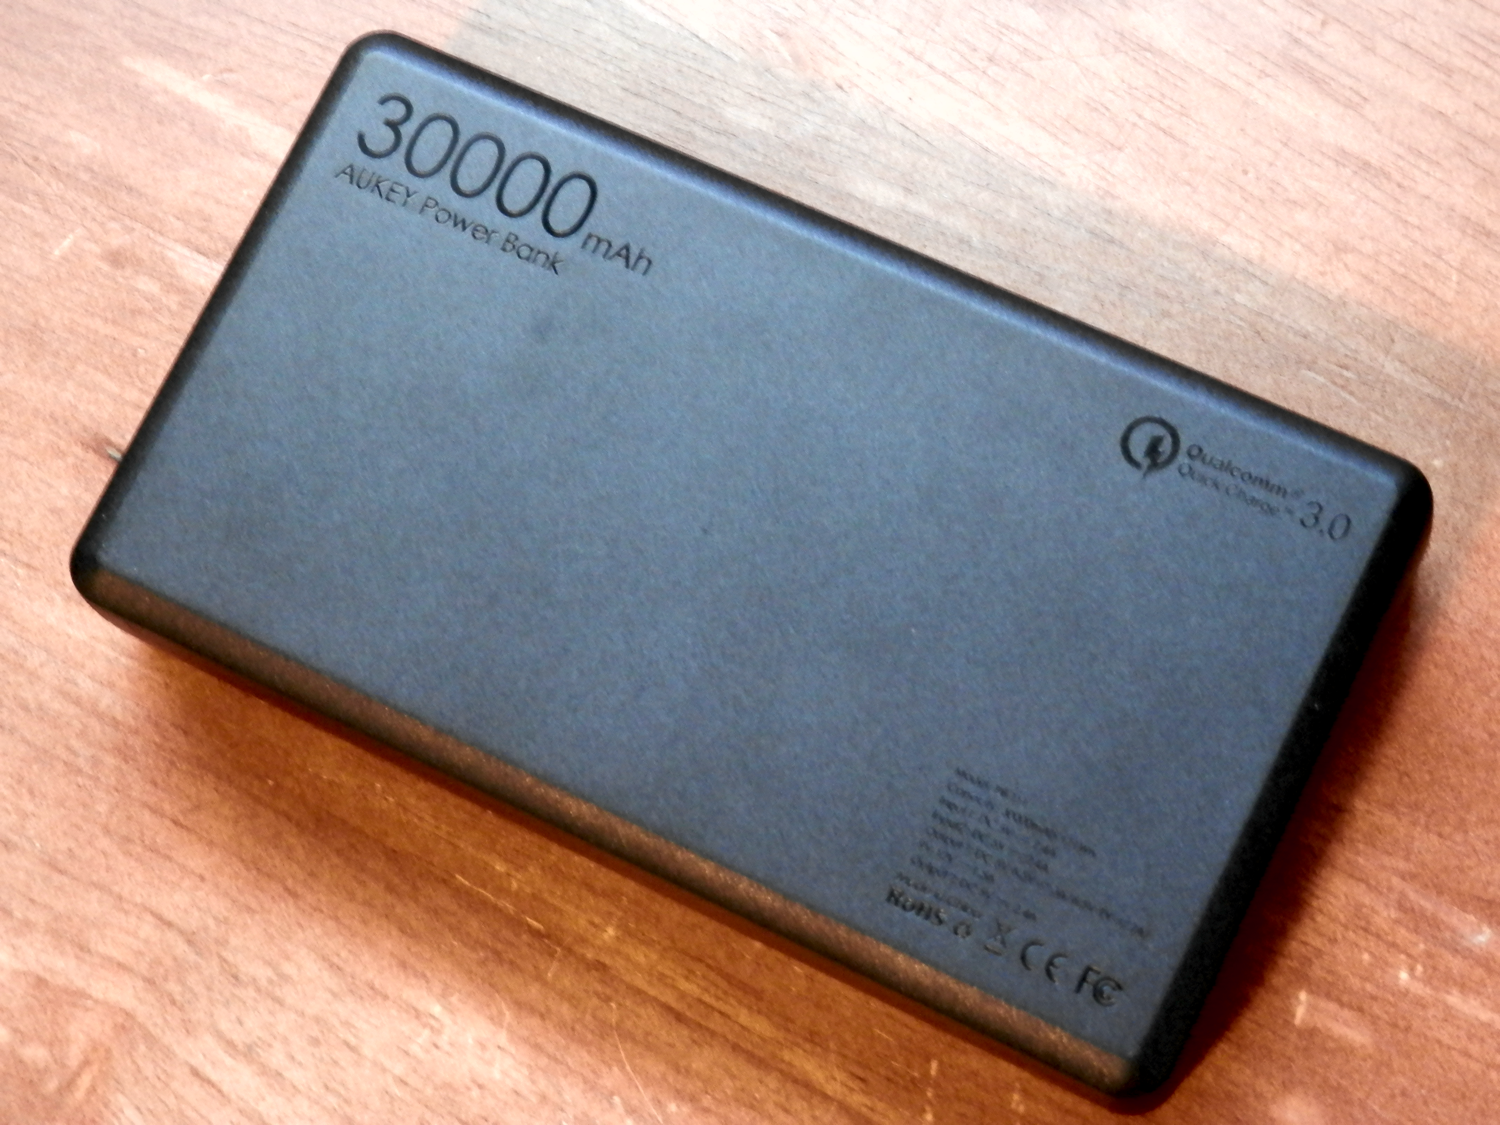 Aukey 30000 mah battery pack branding